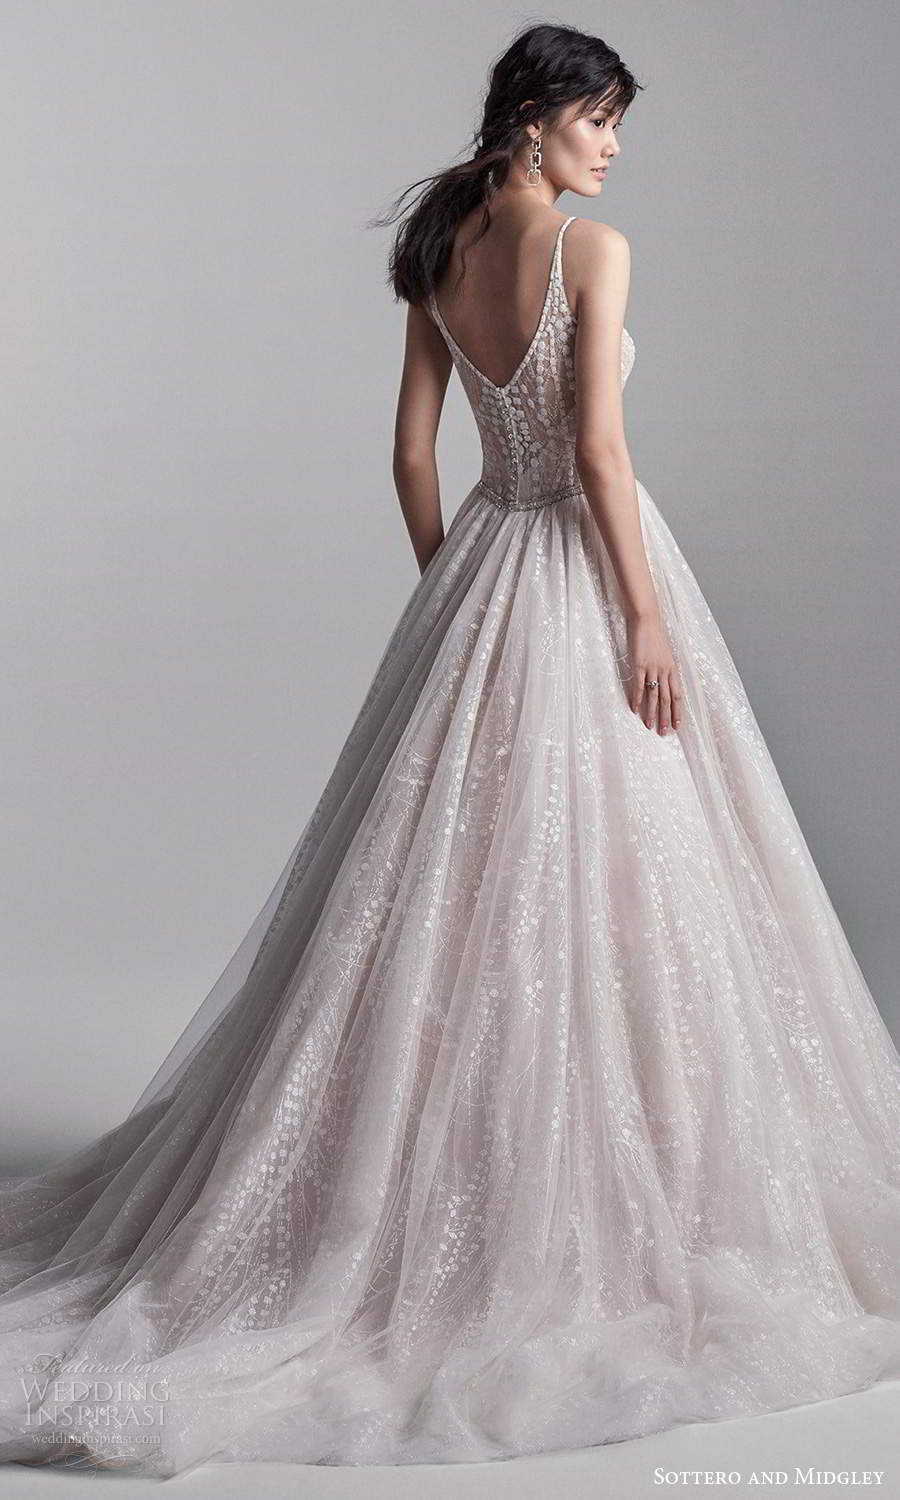 sottero midgley fall 2020 bridal sleeveless straps plunging v neckline embellished bodice a line ball gown wedding dress blush chapel train (4) bv